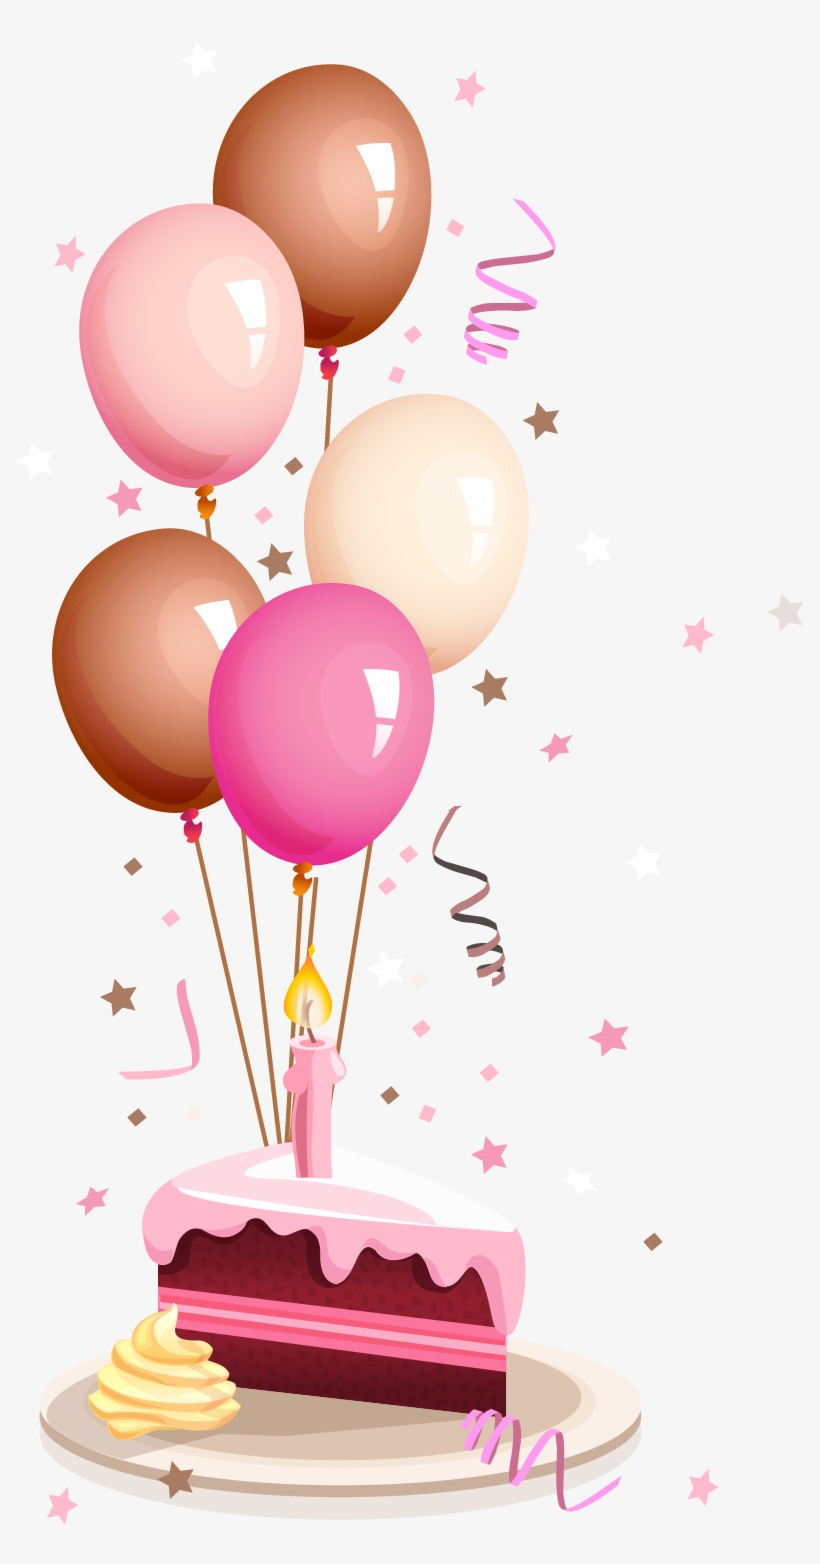 Happy Birthday Balloons Card Png - Graphic Royalty Free Download Baloon Vector Cake Balloon - Card ...